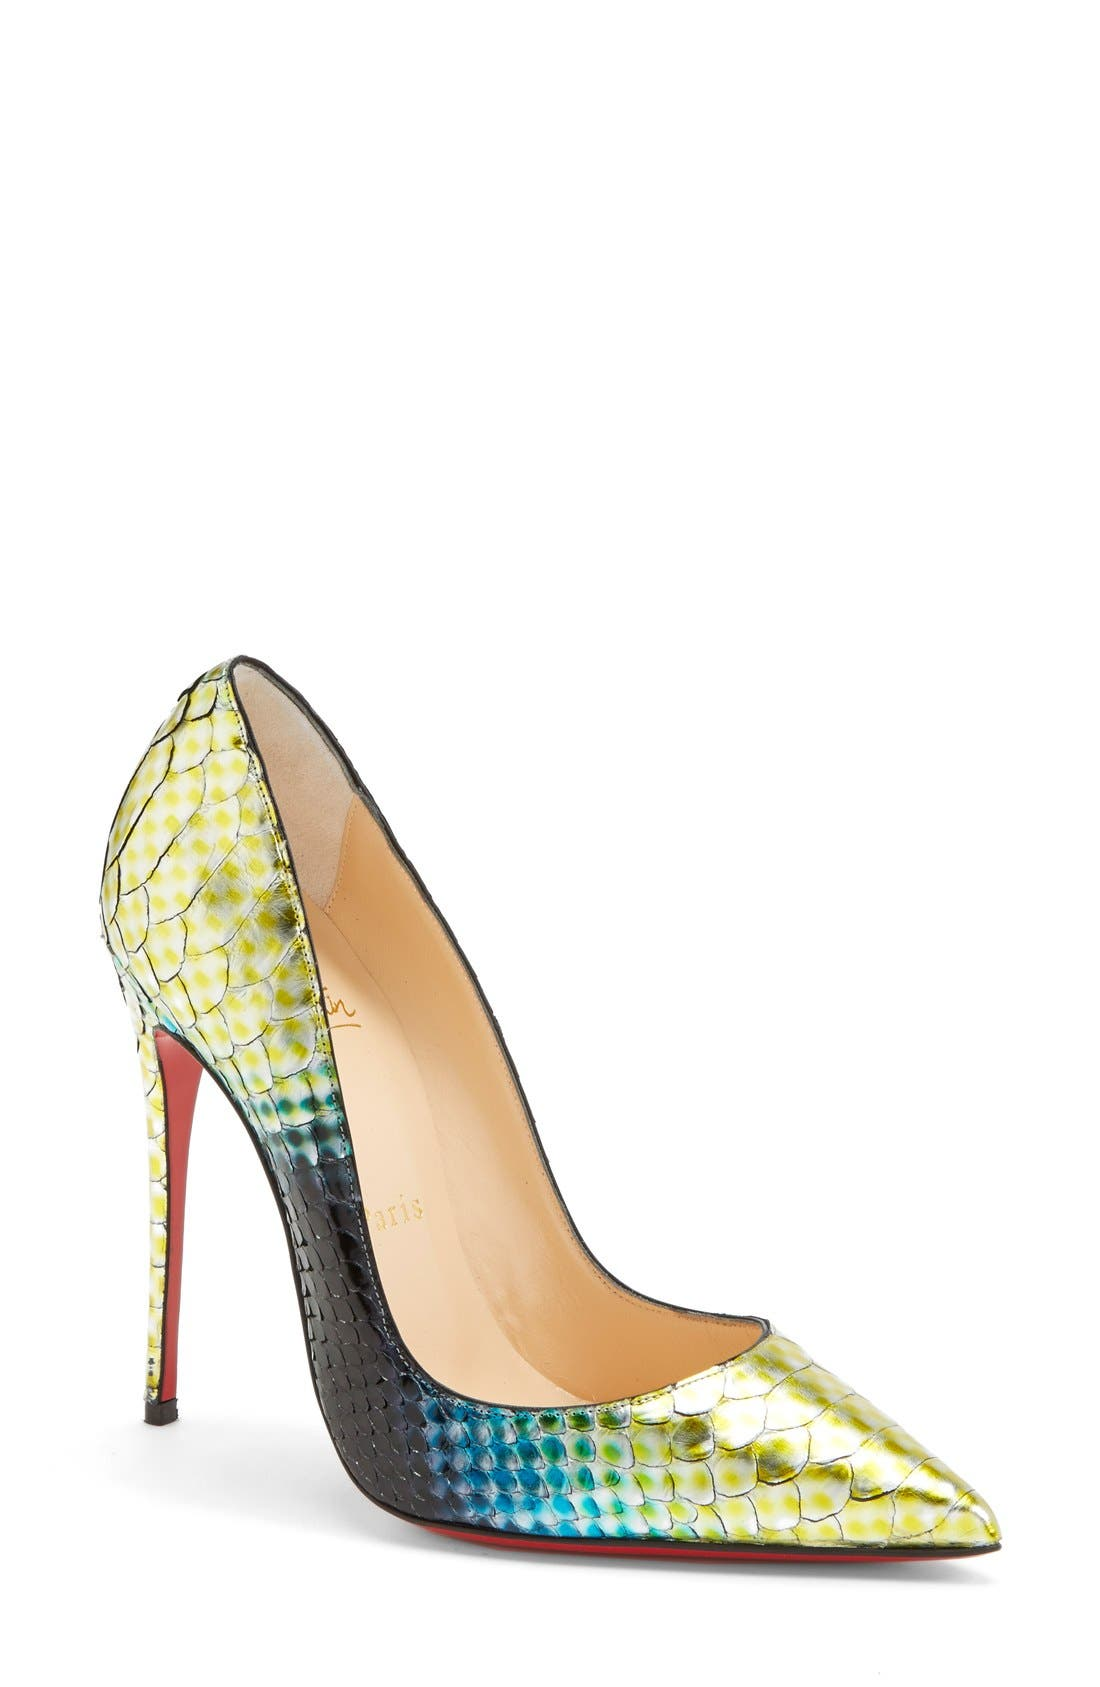 Alternate Image 1 Selected - Christian Louboutin 'So Kate' Painted Genuine Python Pointy Toe Pump